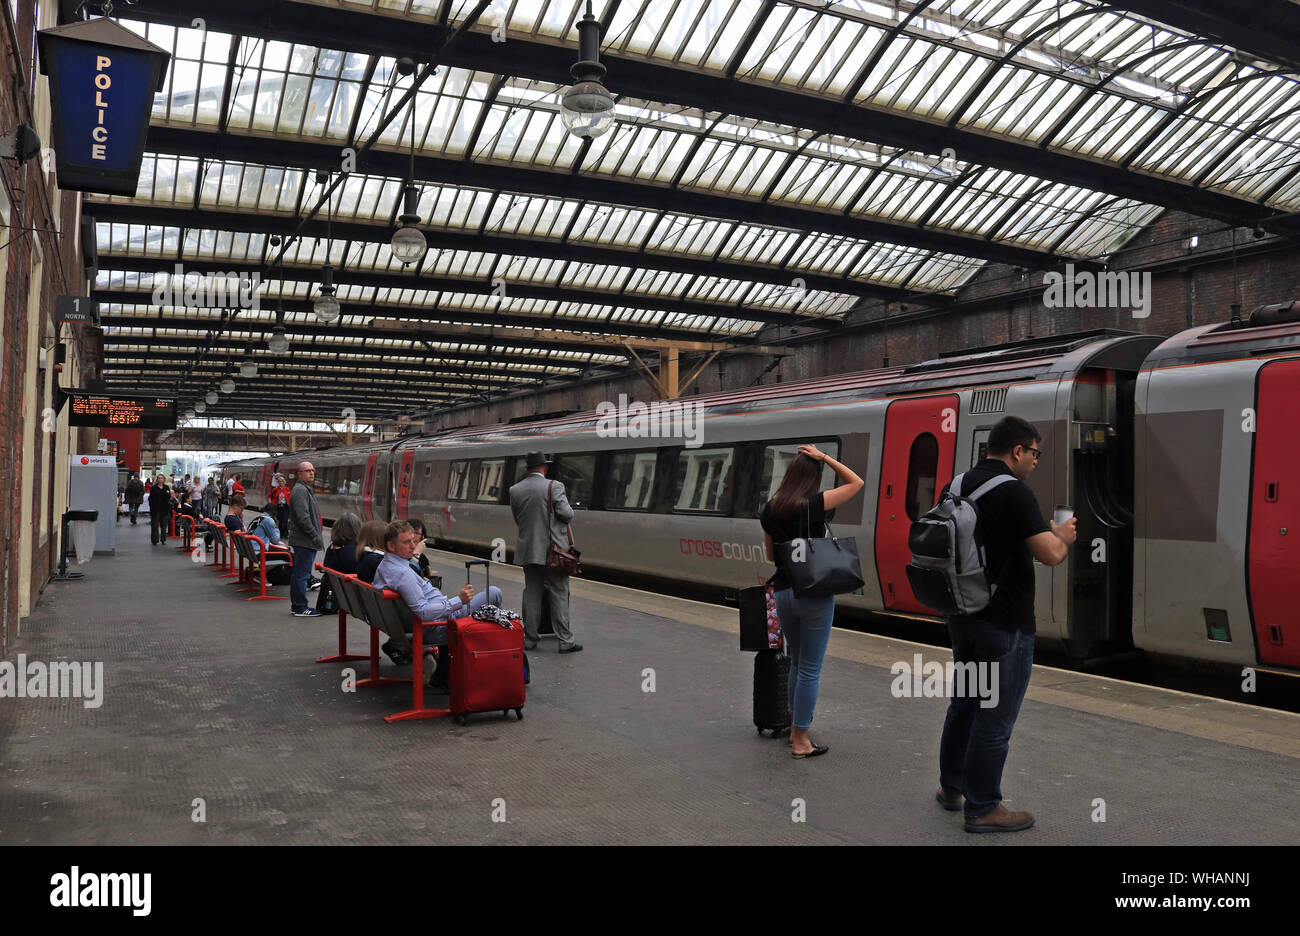 A Cross Country train arrives at Stoke on Trent railway station forming a service to Bristol Temple Meads as passengers wait to board. Stock Photo